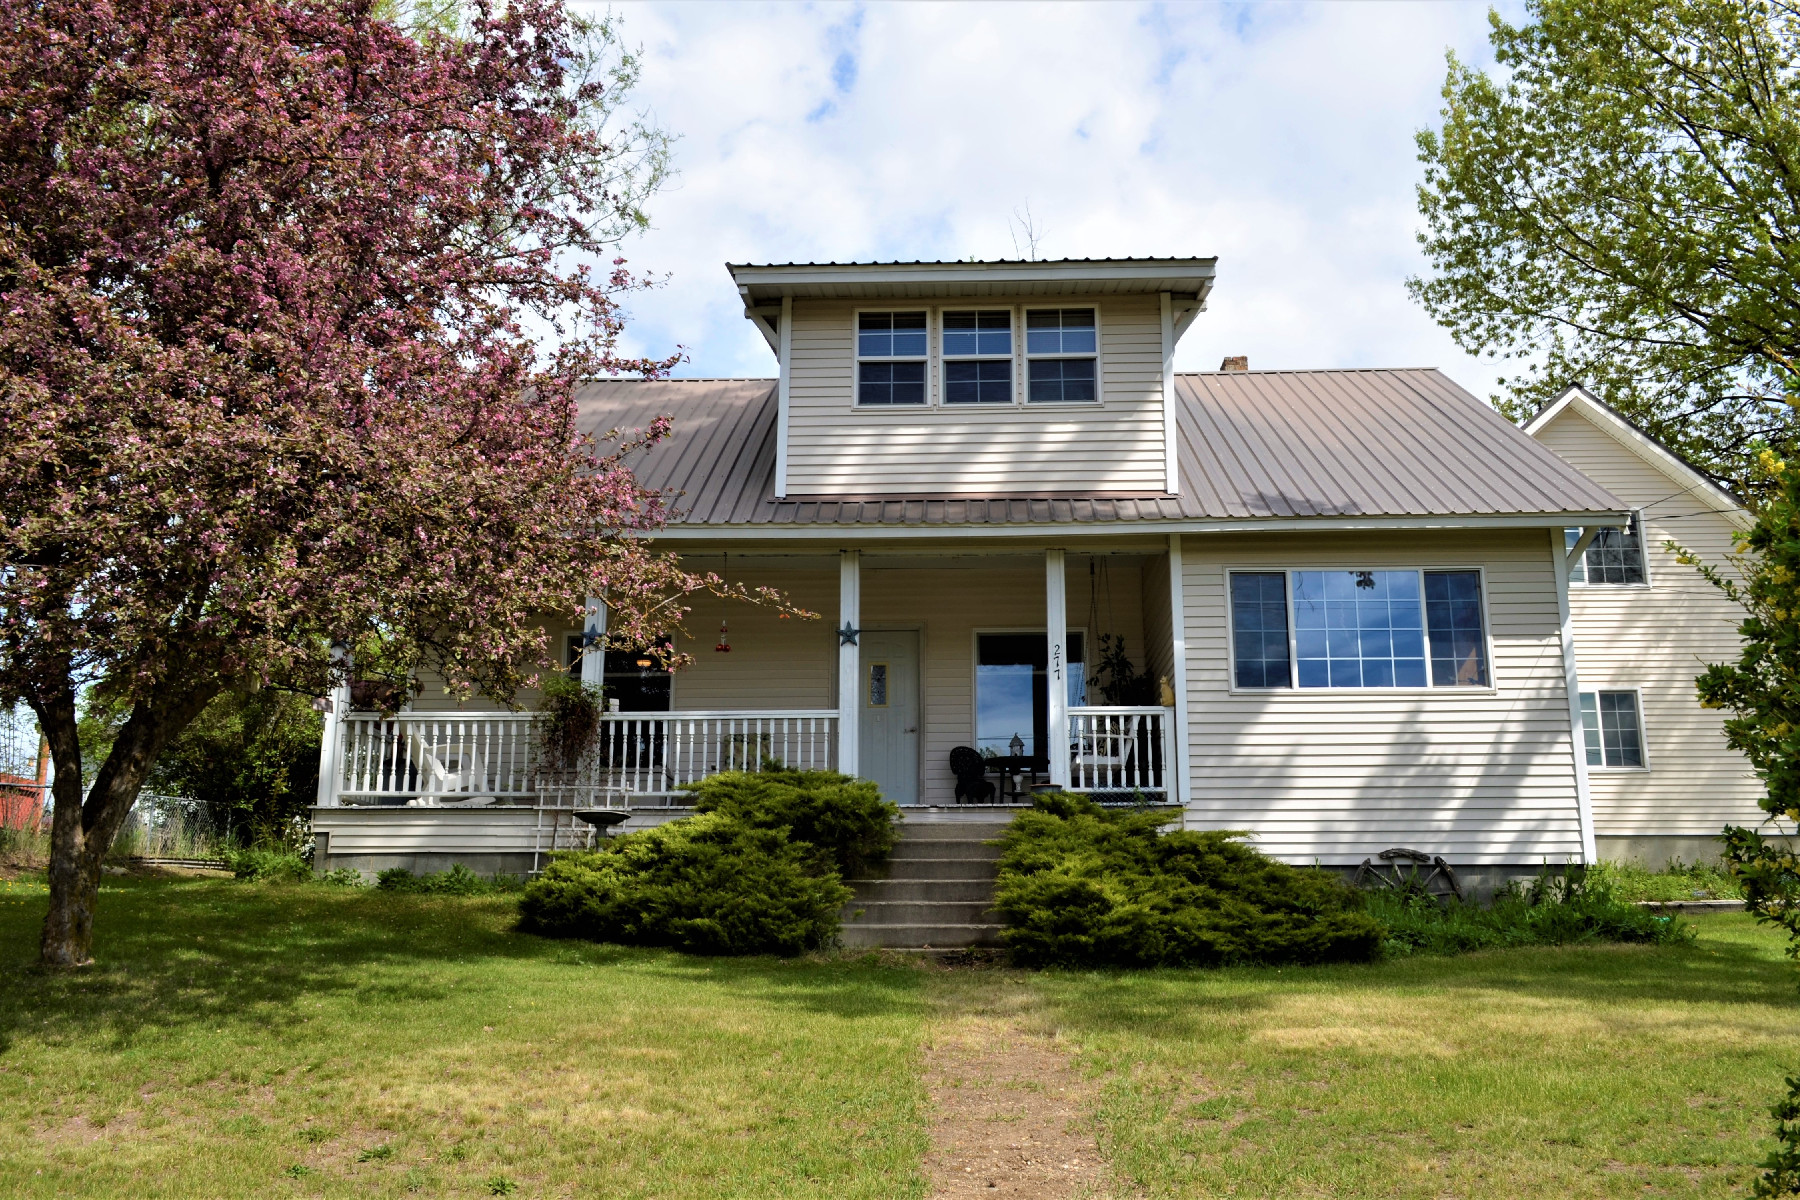 Single Family Homes for Active at Beautiful craftsman home 277 Summitt Priest River, Idaho 83856 United States